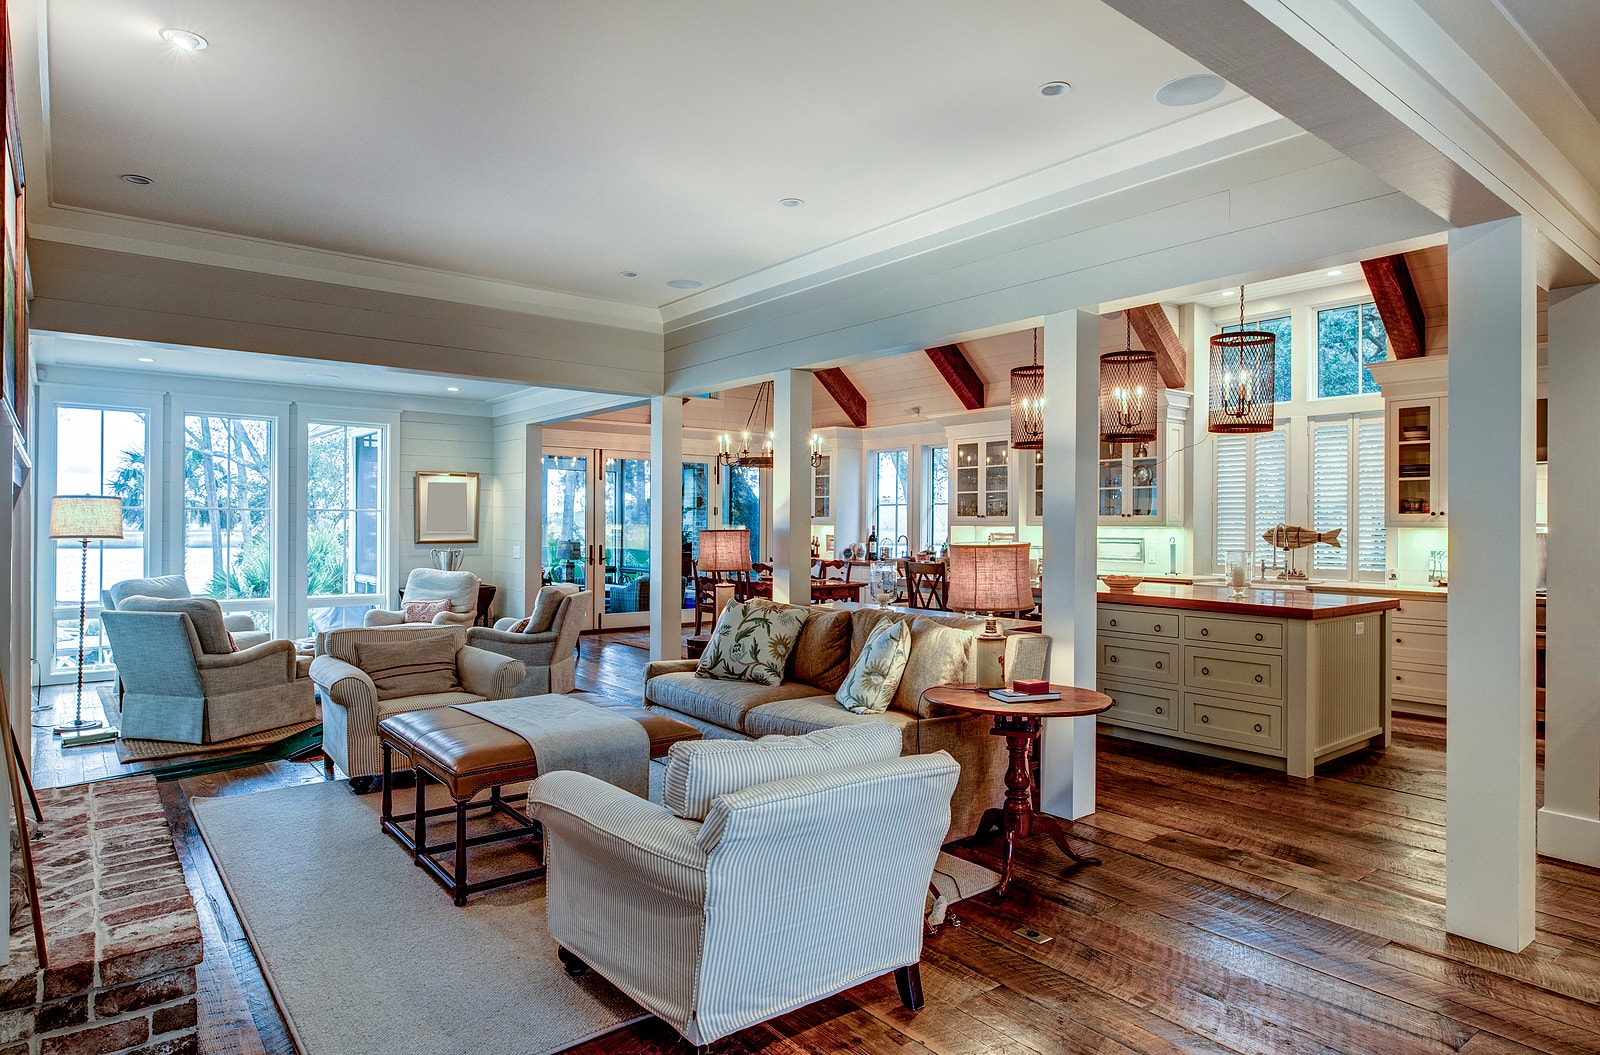 The Comforts of Home: Furnished vs Unfurnished